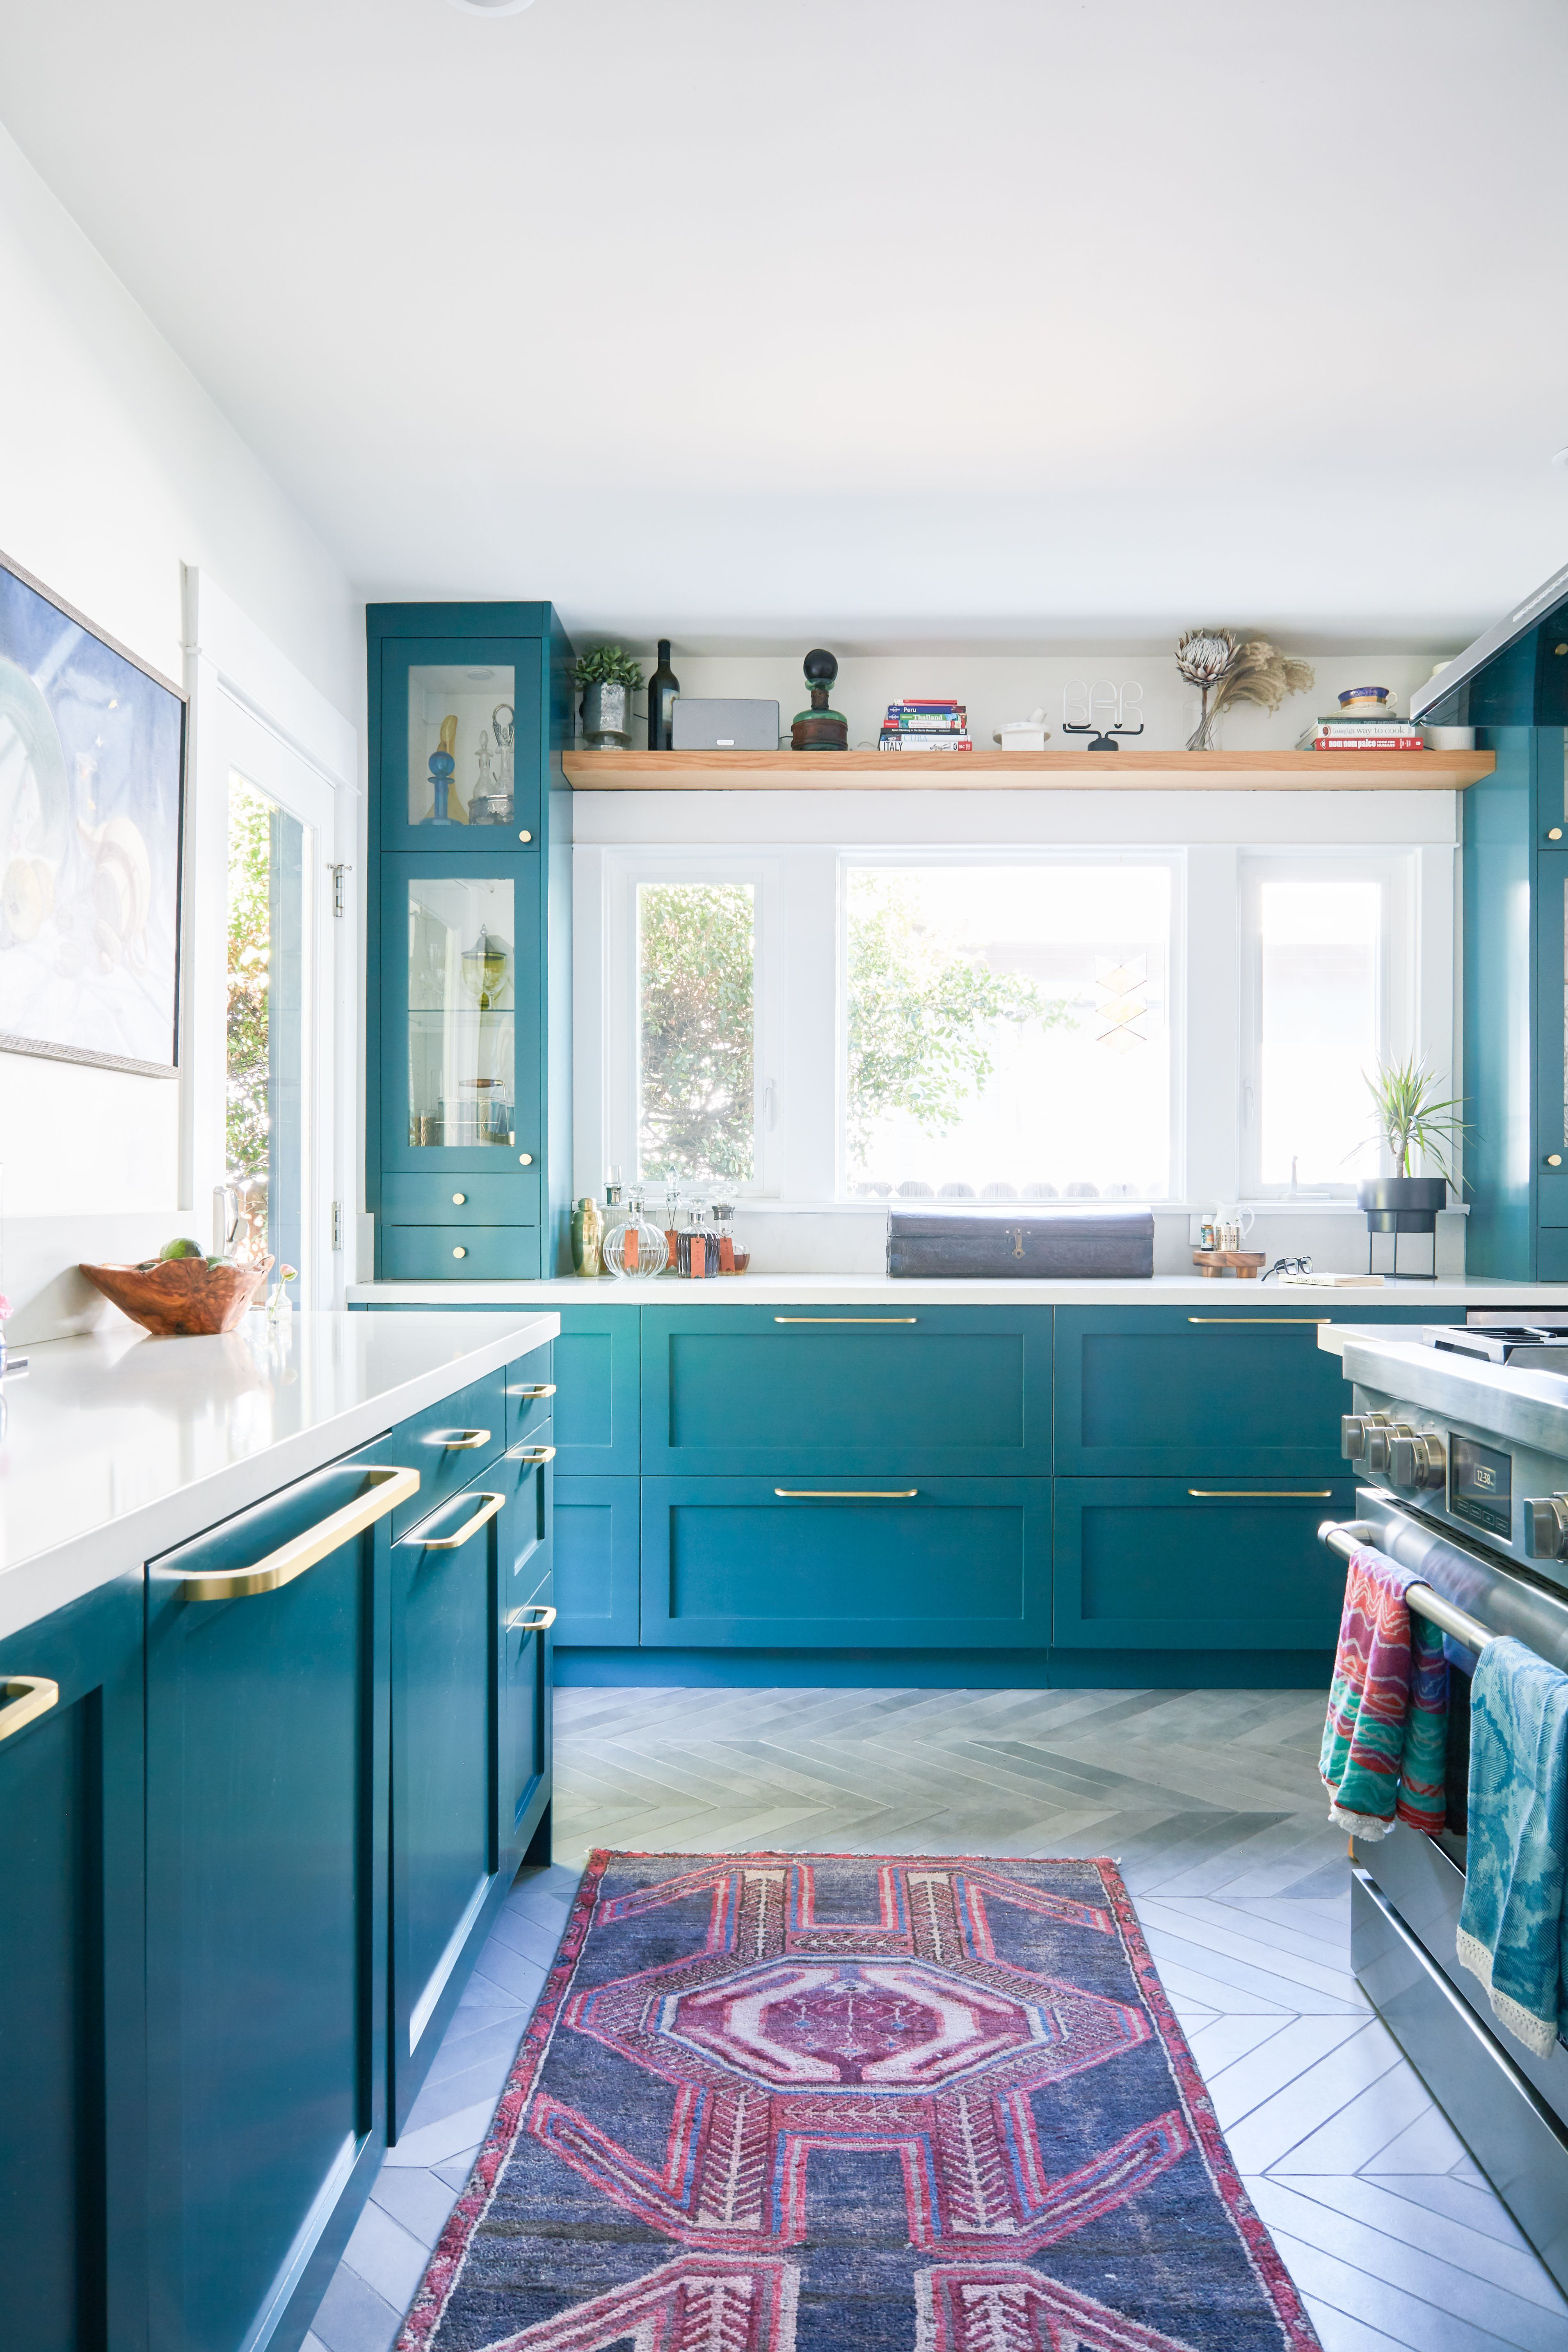 After what an interior designers home looks like kitchendecorideas